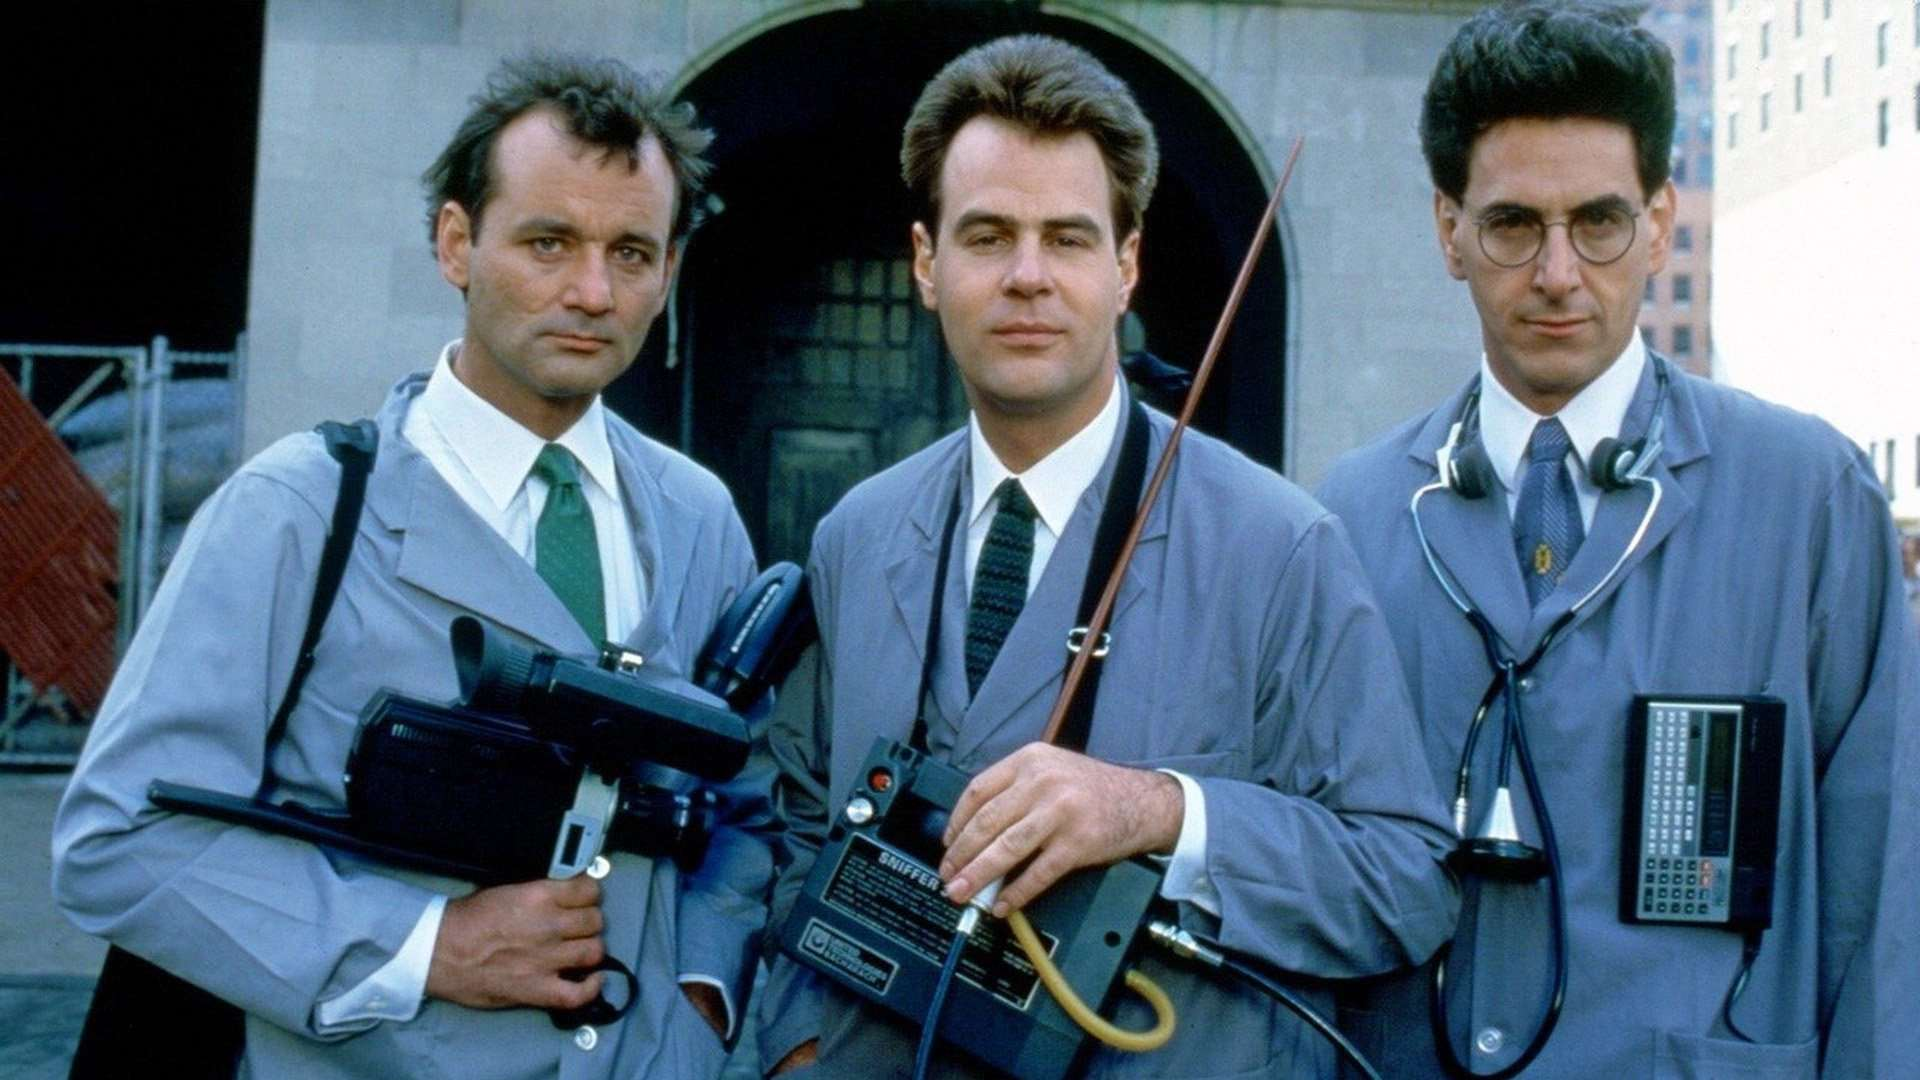 Discredited parapsychologists rebranding themselves as ghostbusters - (l to r) Peter Venkman (Bill Murray), Ray Stantz (Dan Aykroyd) and Egon Spengler (Harold Ramis) in Ghostbusters (1984)